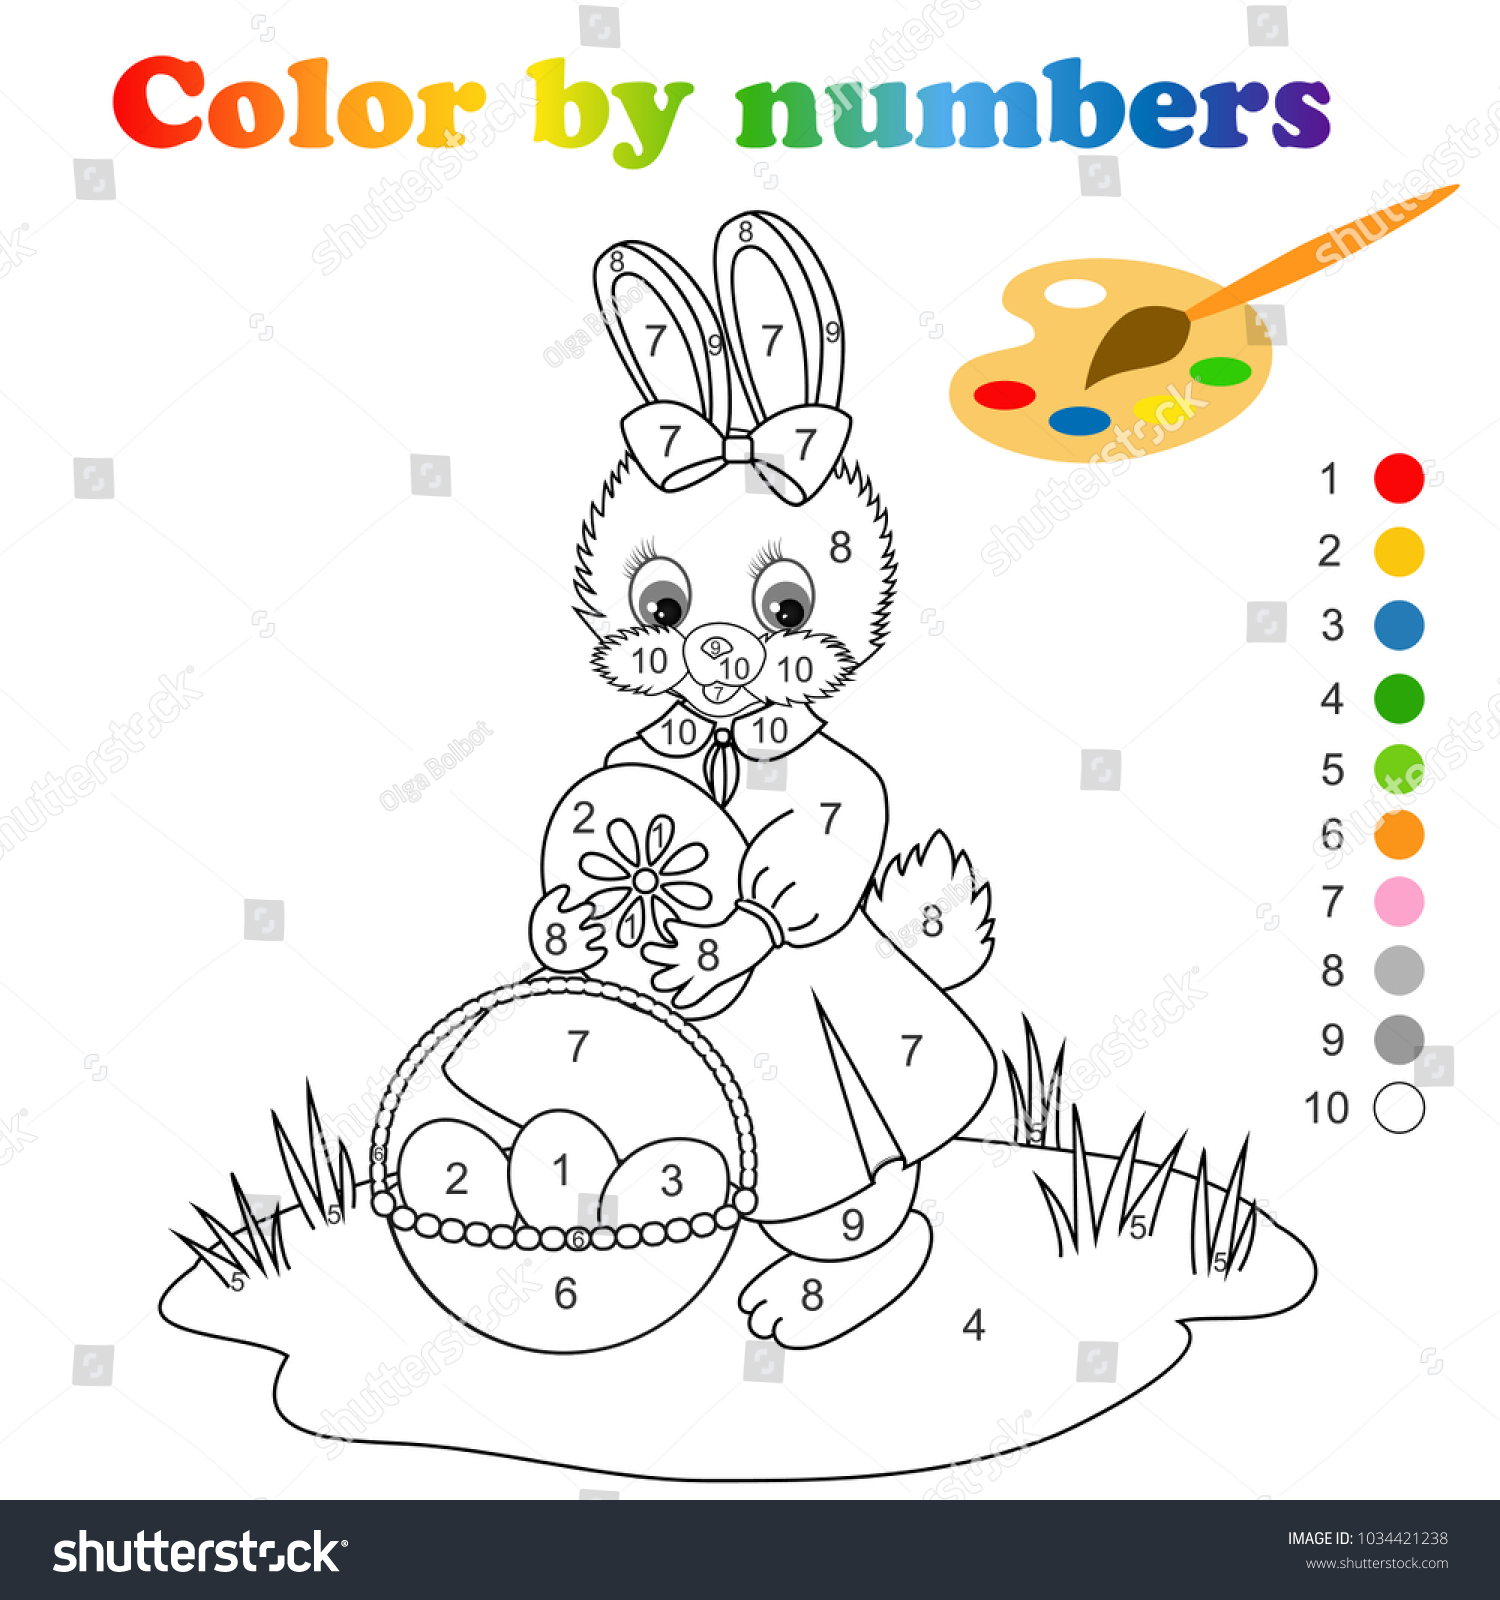 Coloring page with cute easter bunny coloring by numbers is educational children game drawing